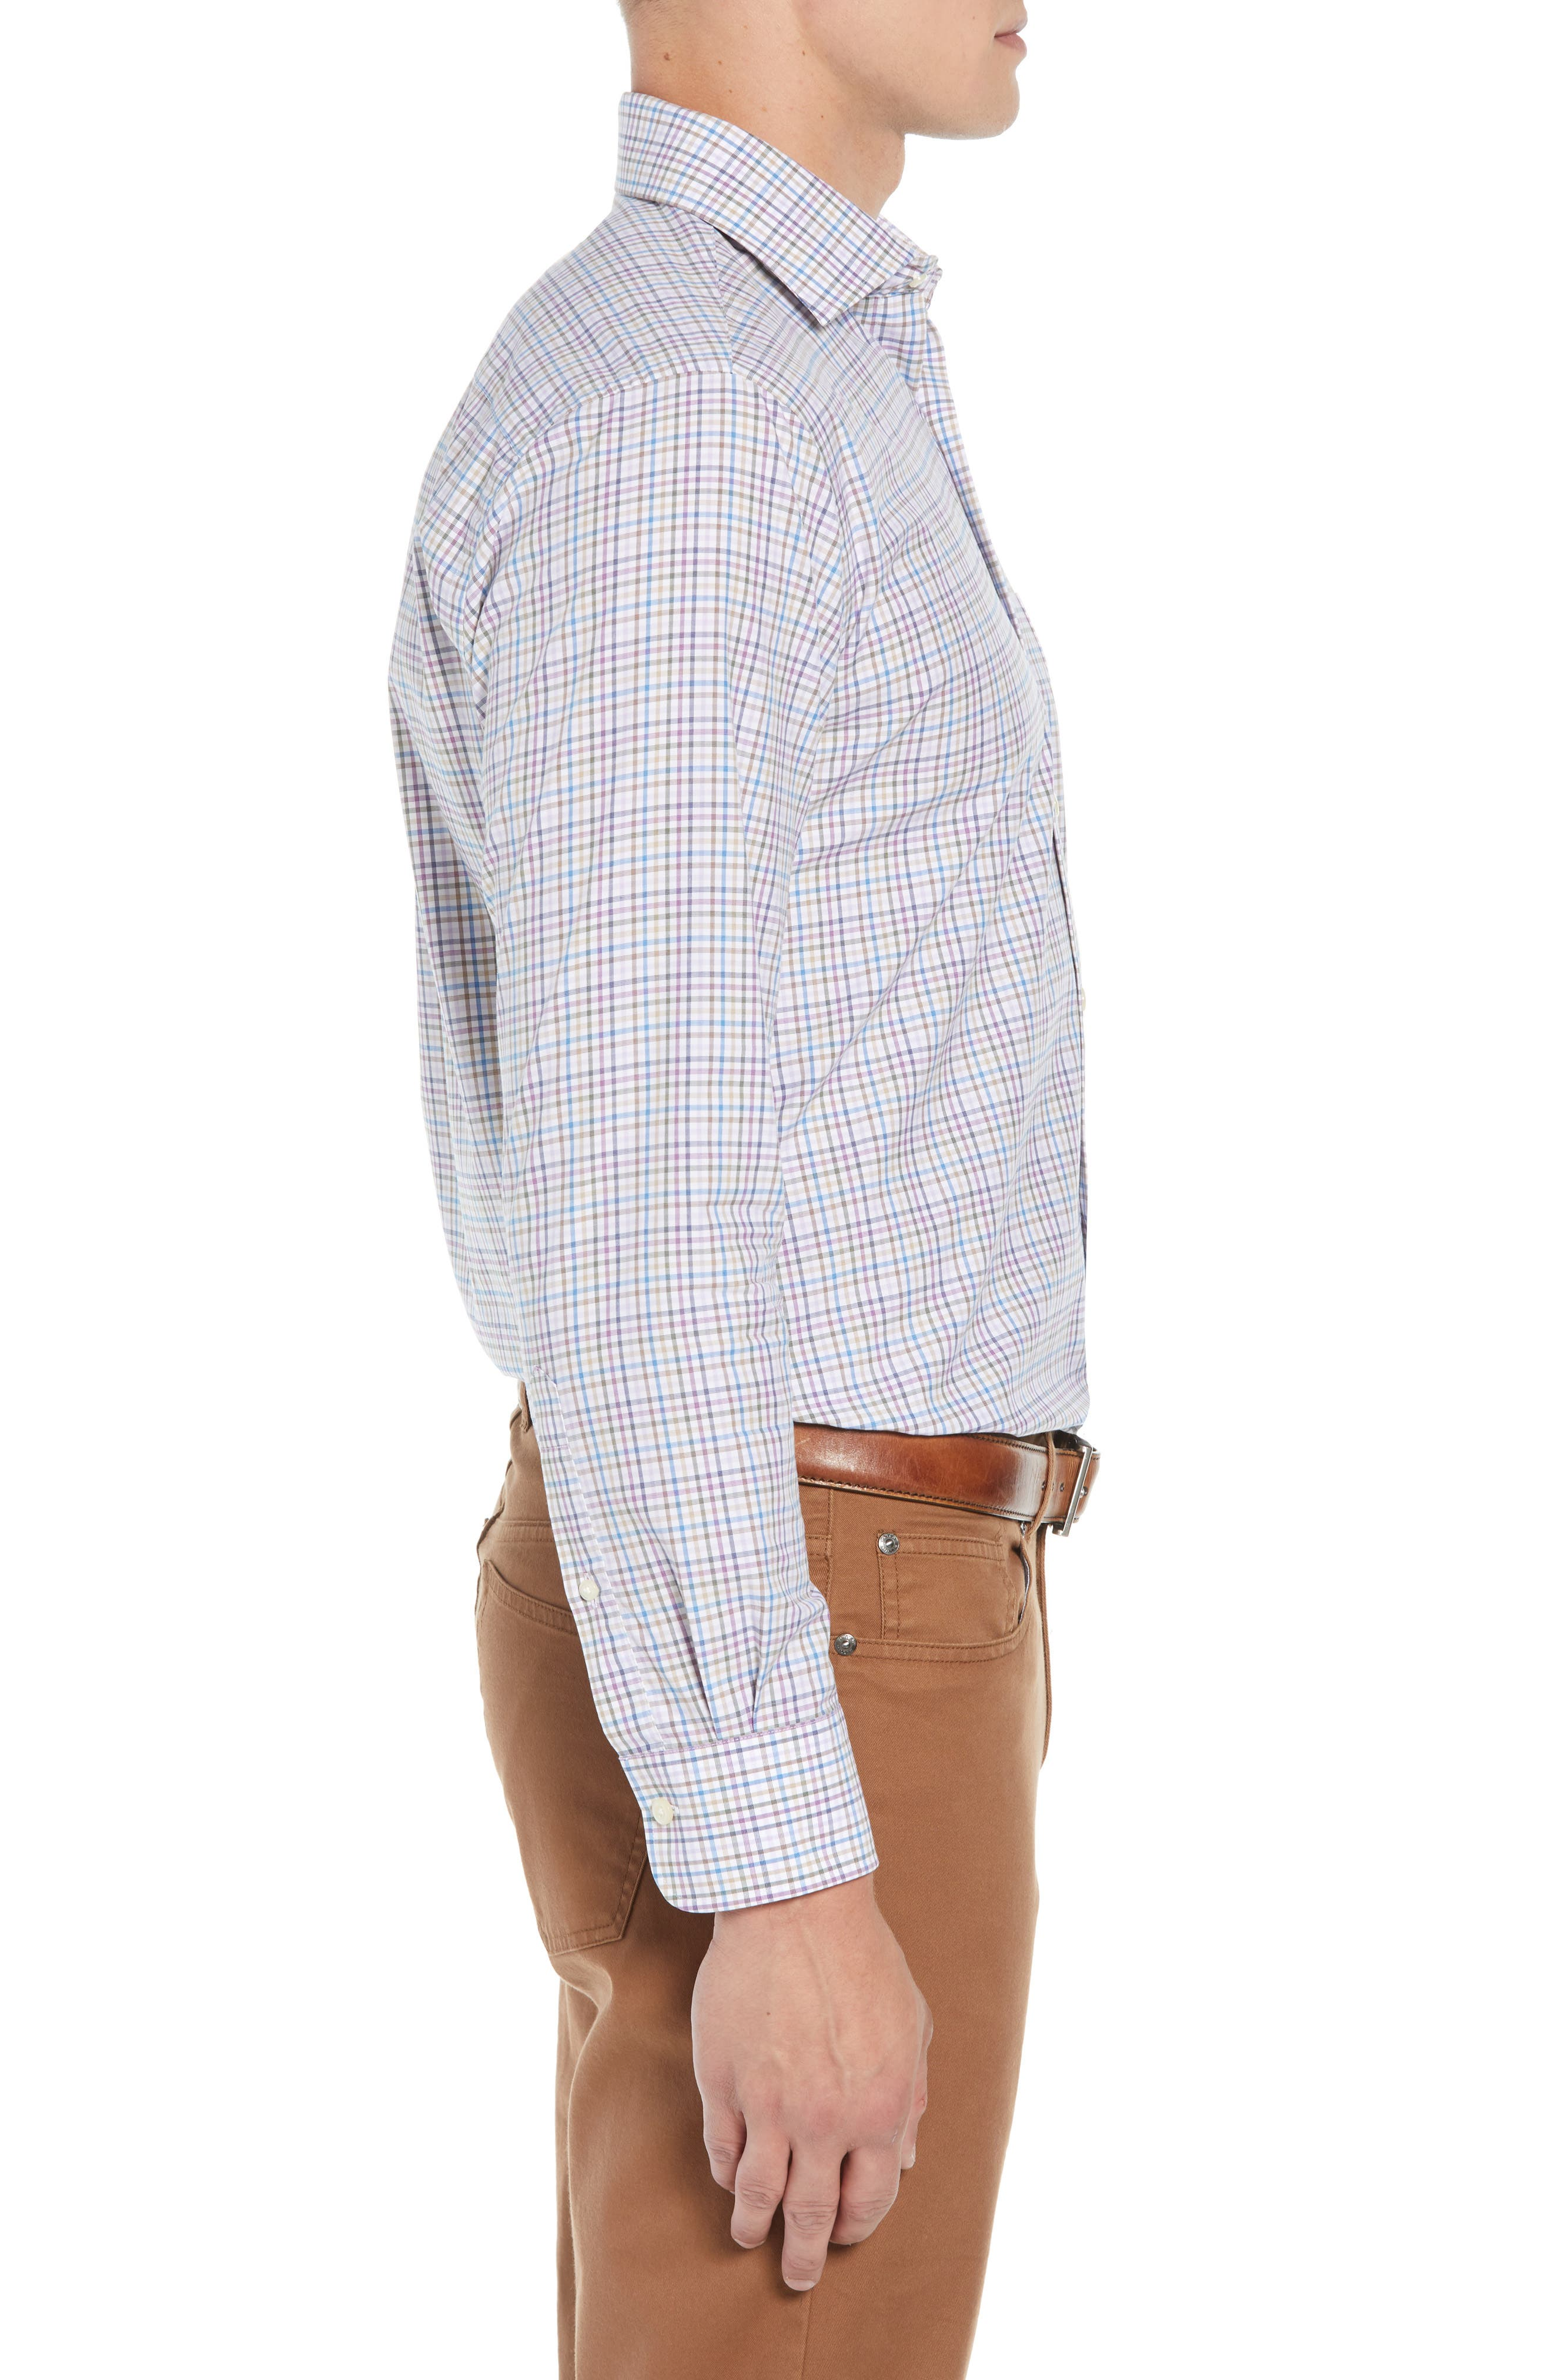 Whittier Heights Check Sport Shirt,                             Alternate thumbnail 4, color,                             BEET